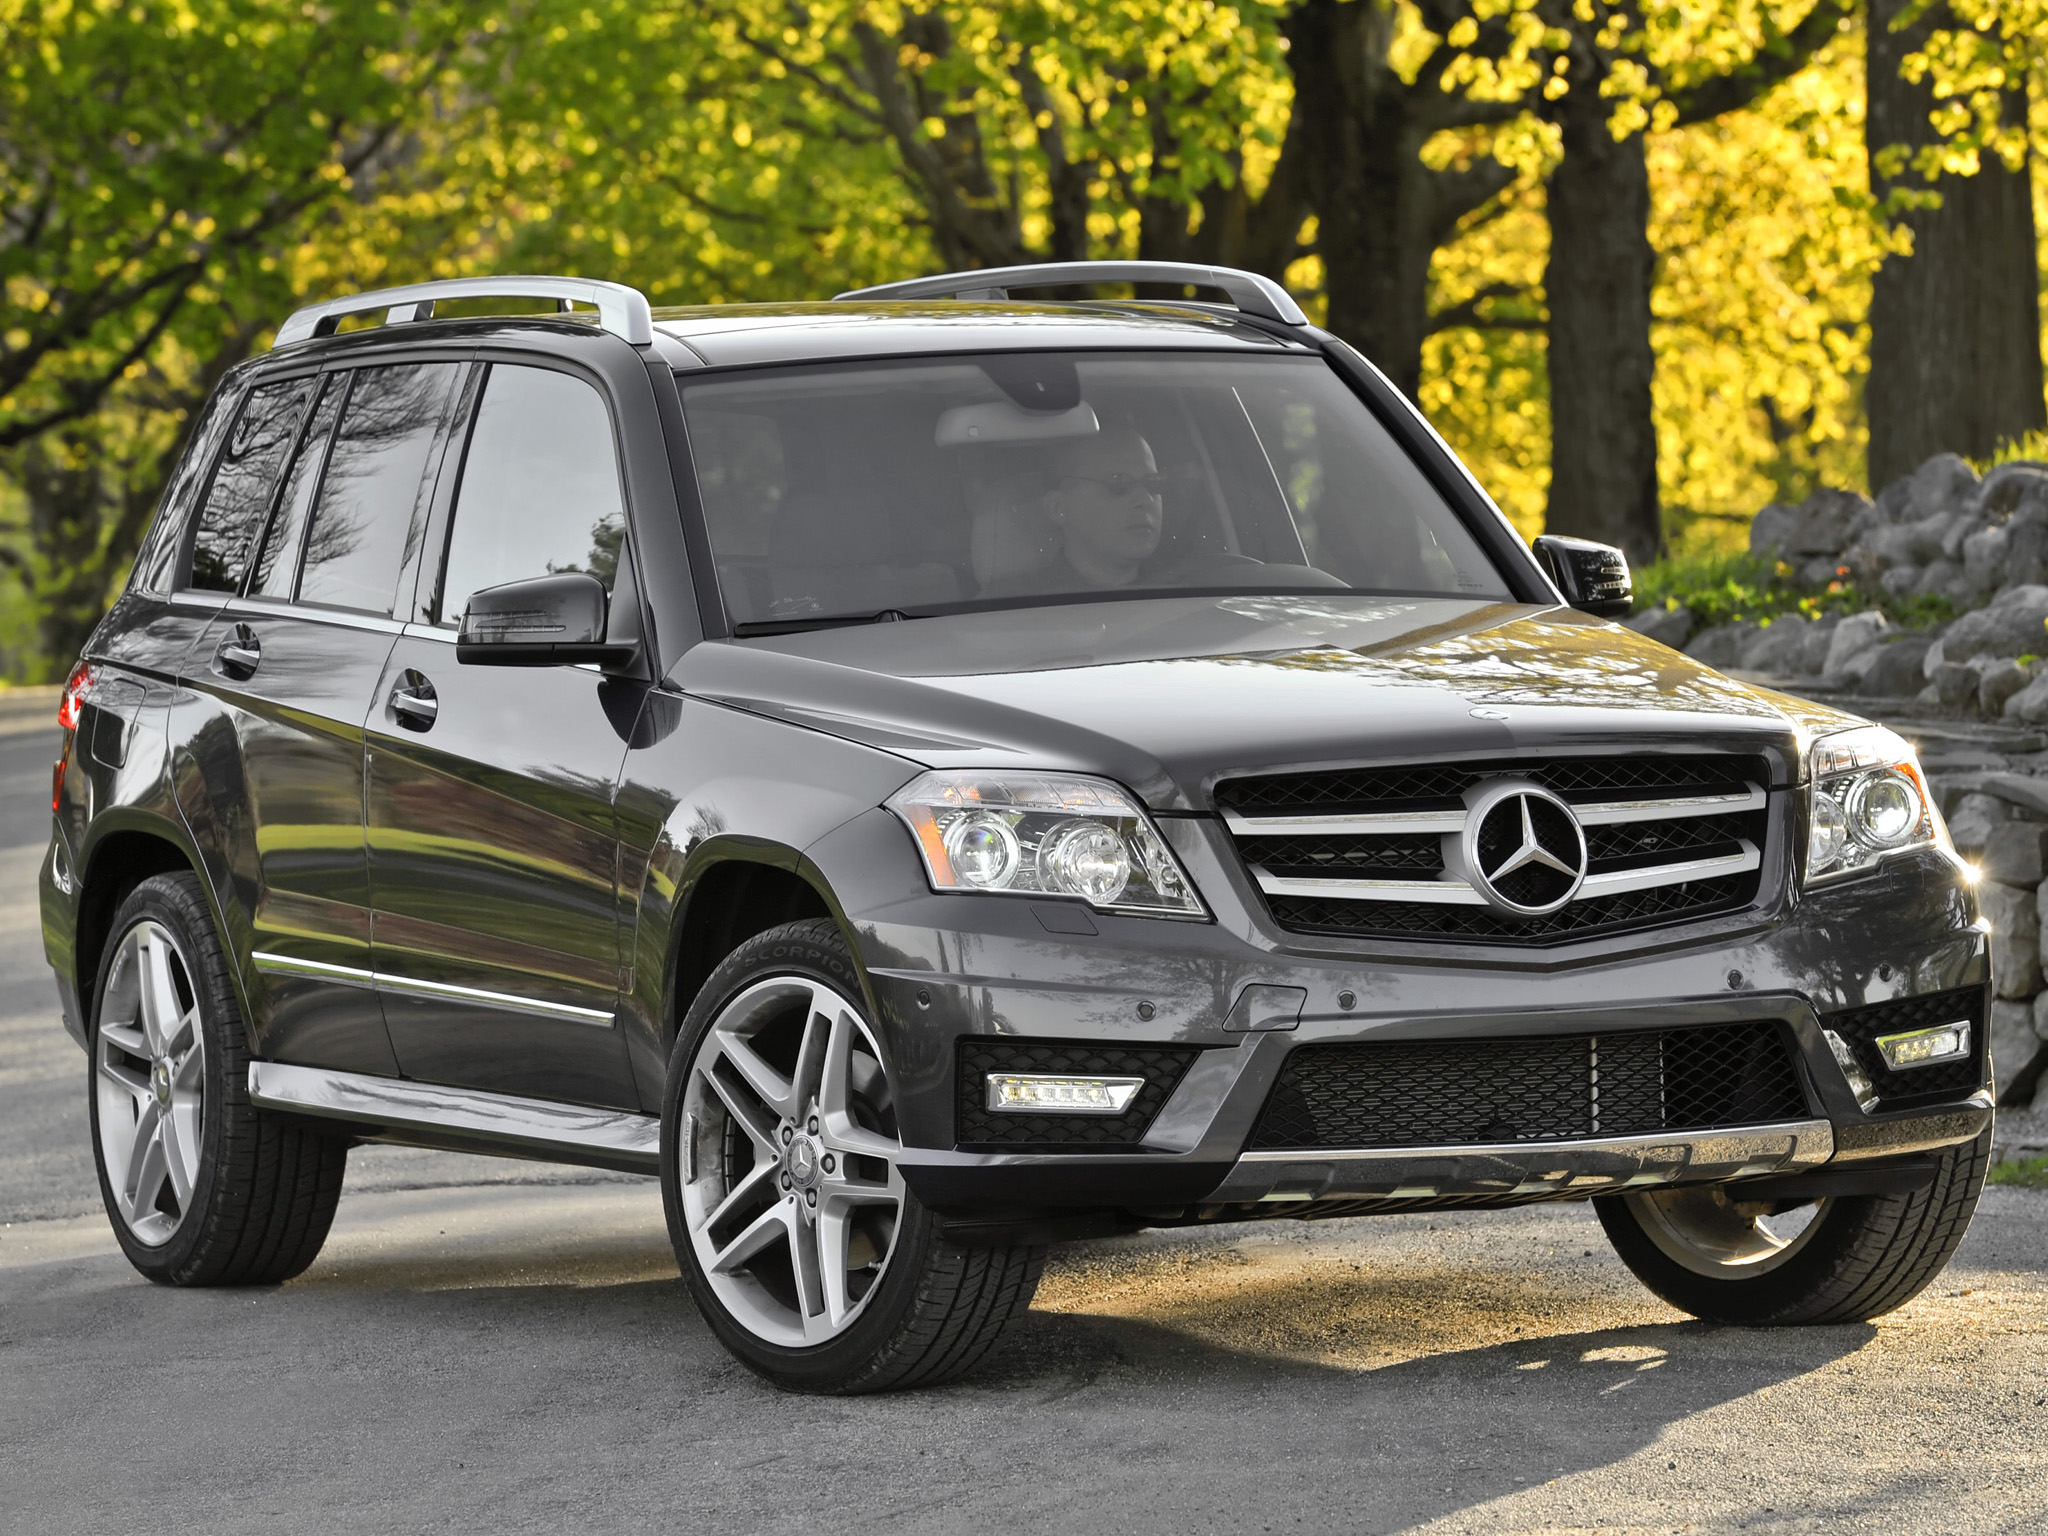 mercedes benz glk amg photos photo gallery page 3